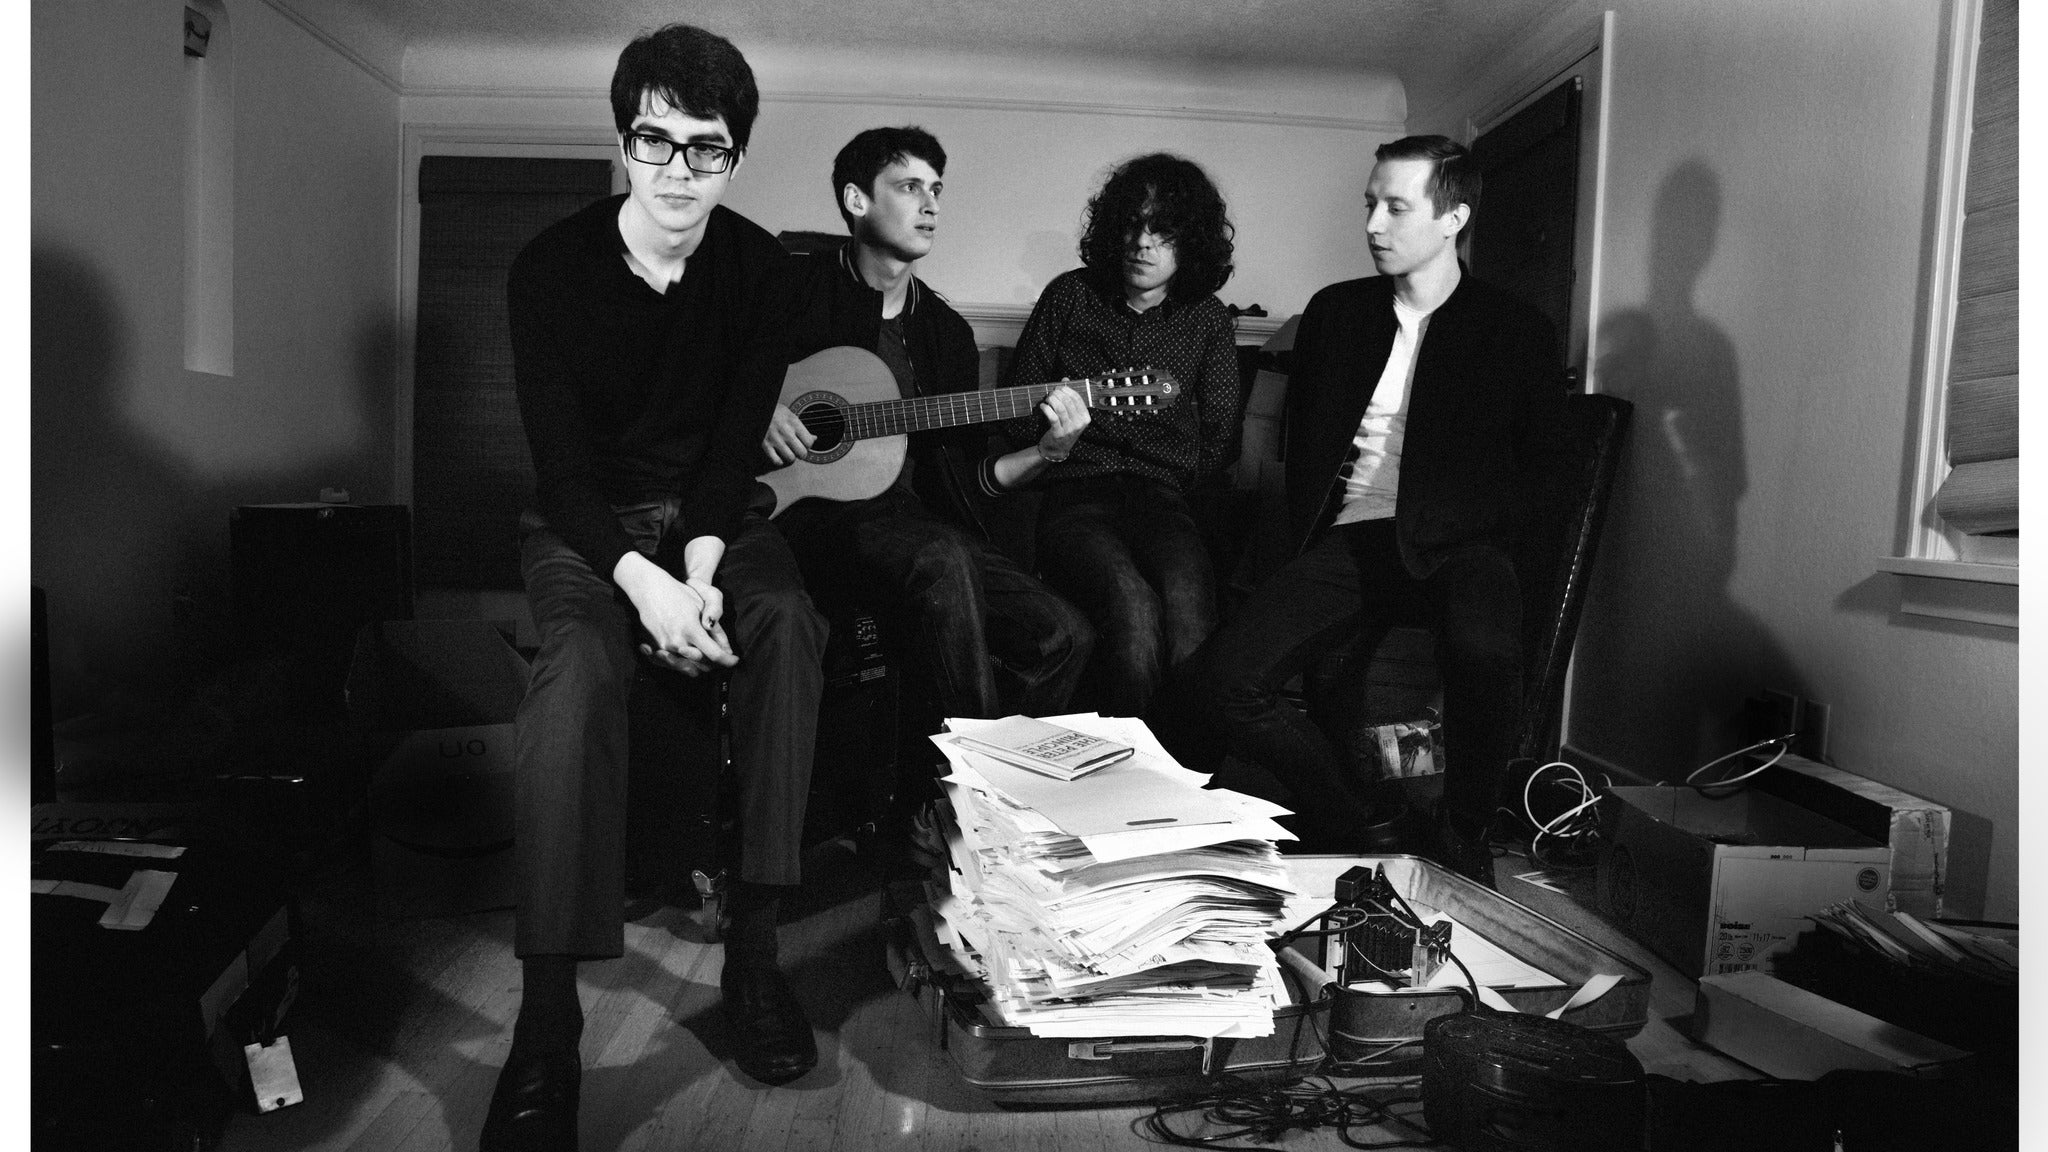 Car Seat Headrest at Orange Peel